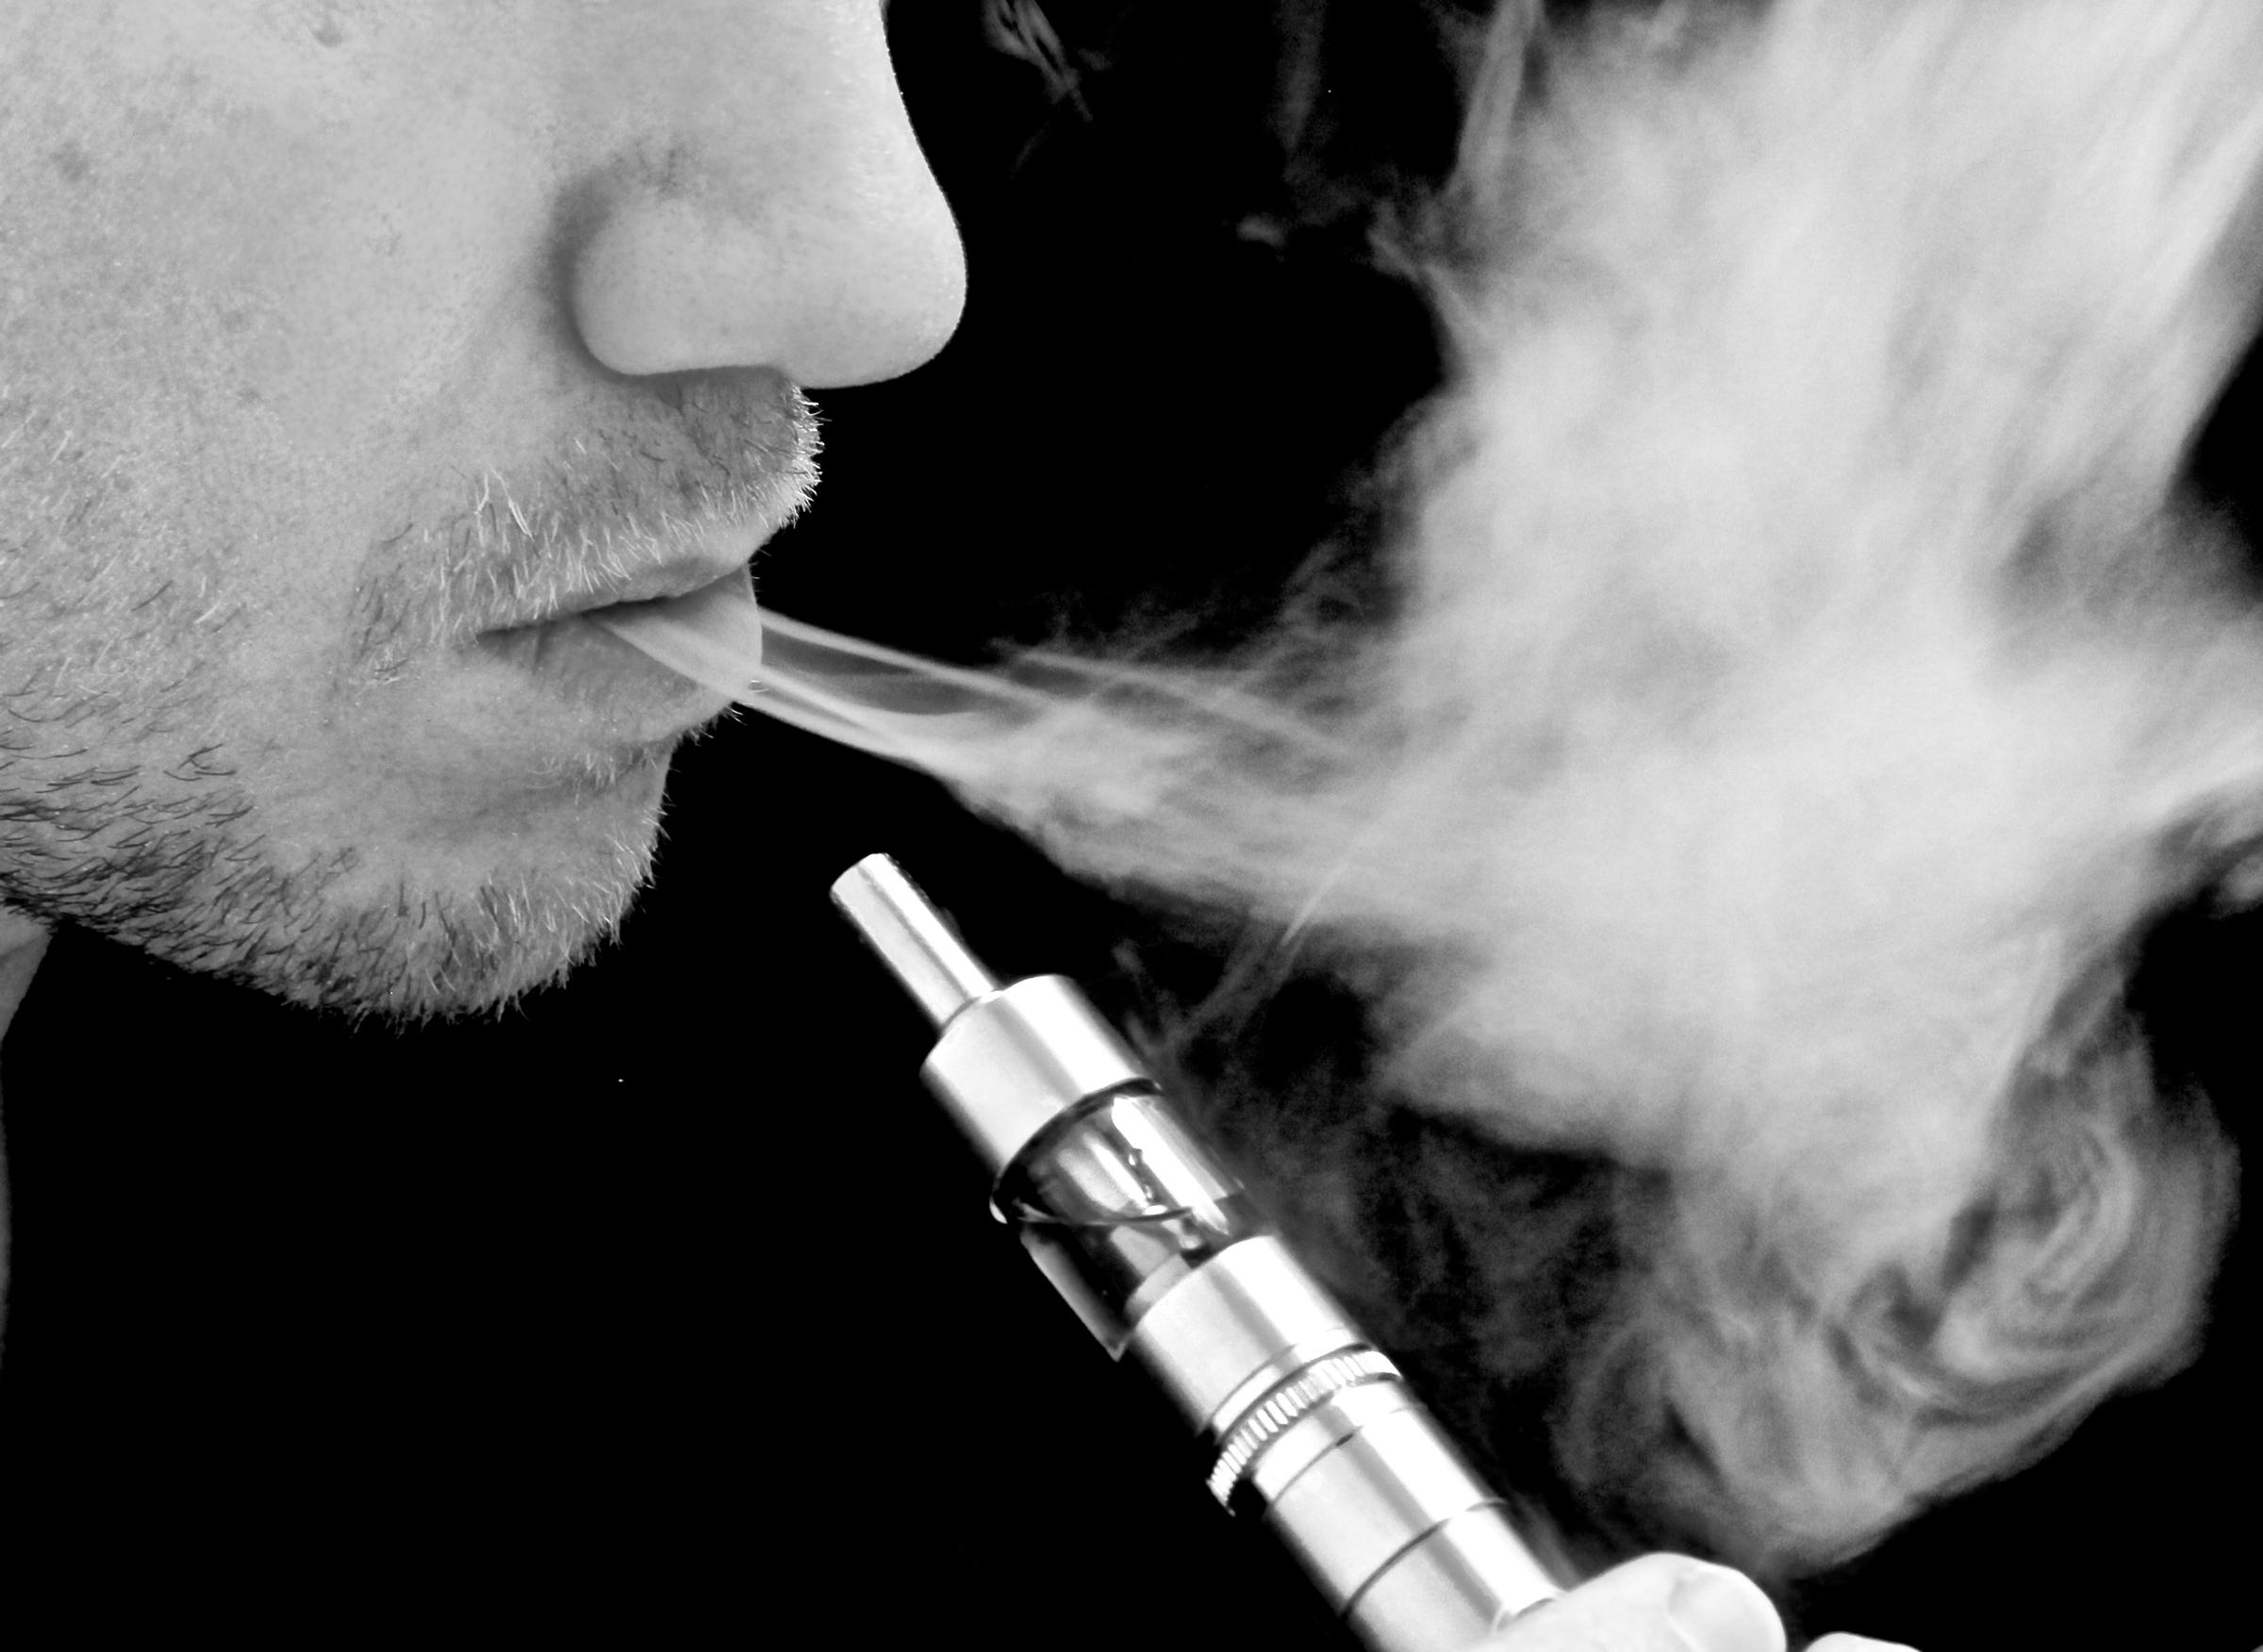 Vaping: The rapid rise in use of e-cigarettes